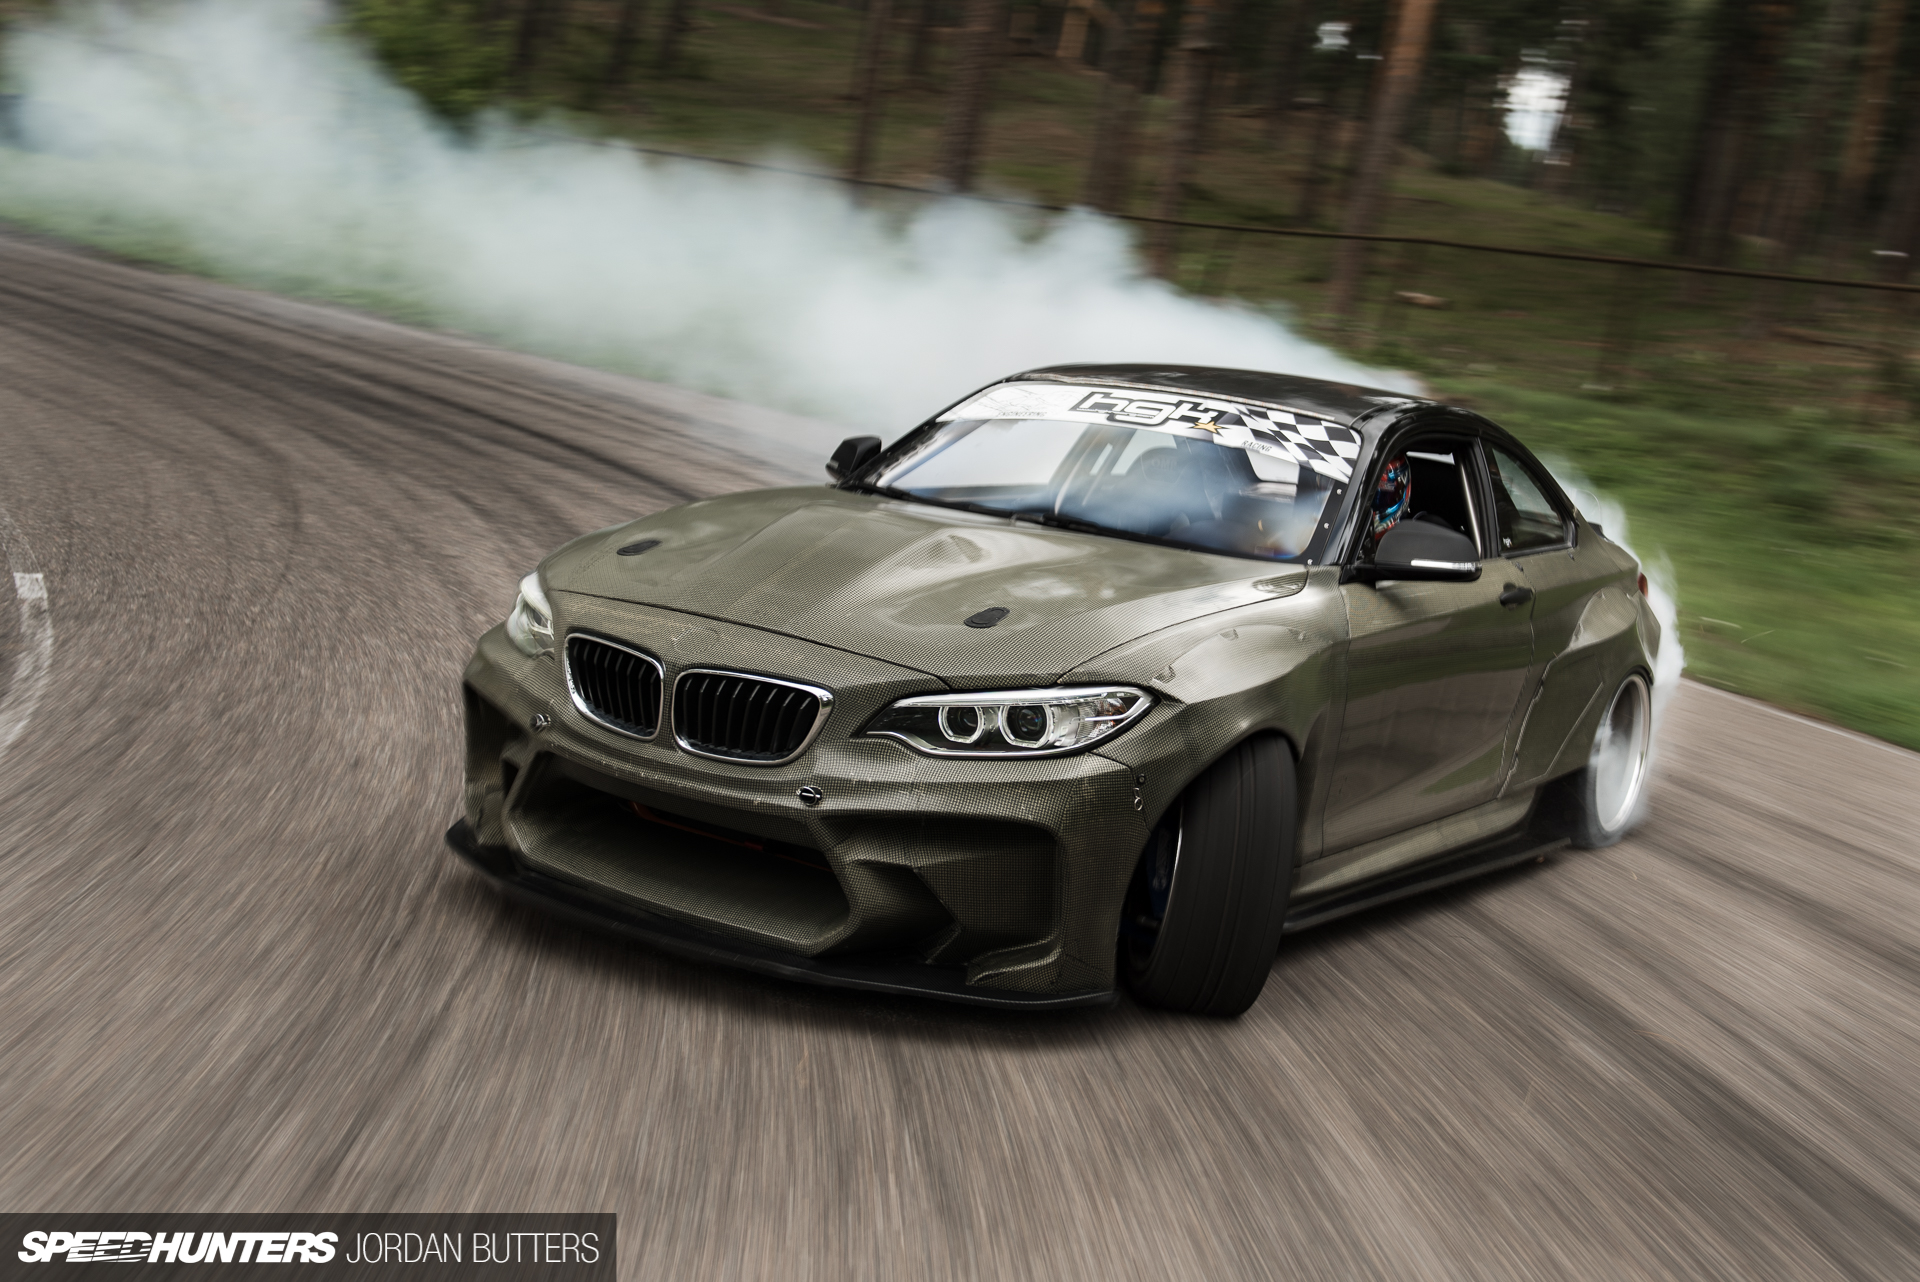 Modified Sports Car Wallpaper Building The World S Best Bmw Drift Car By Hgk Motorsport